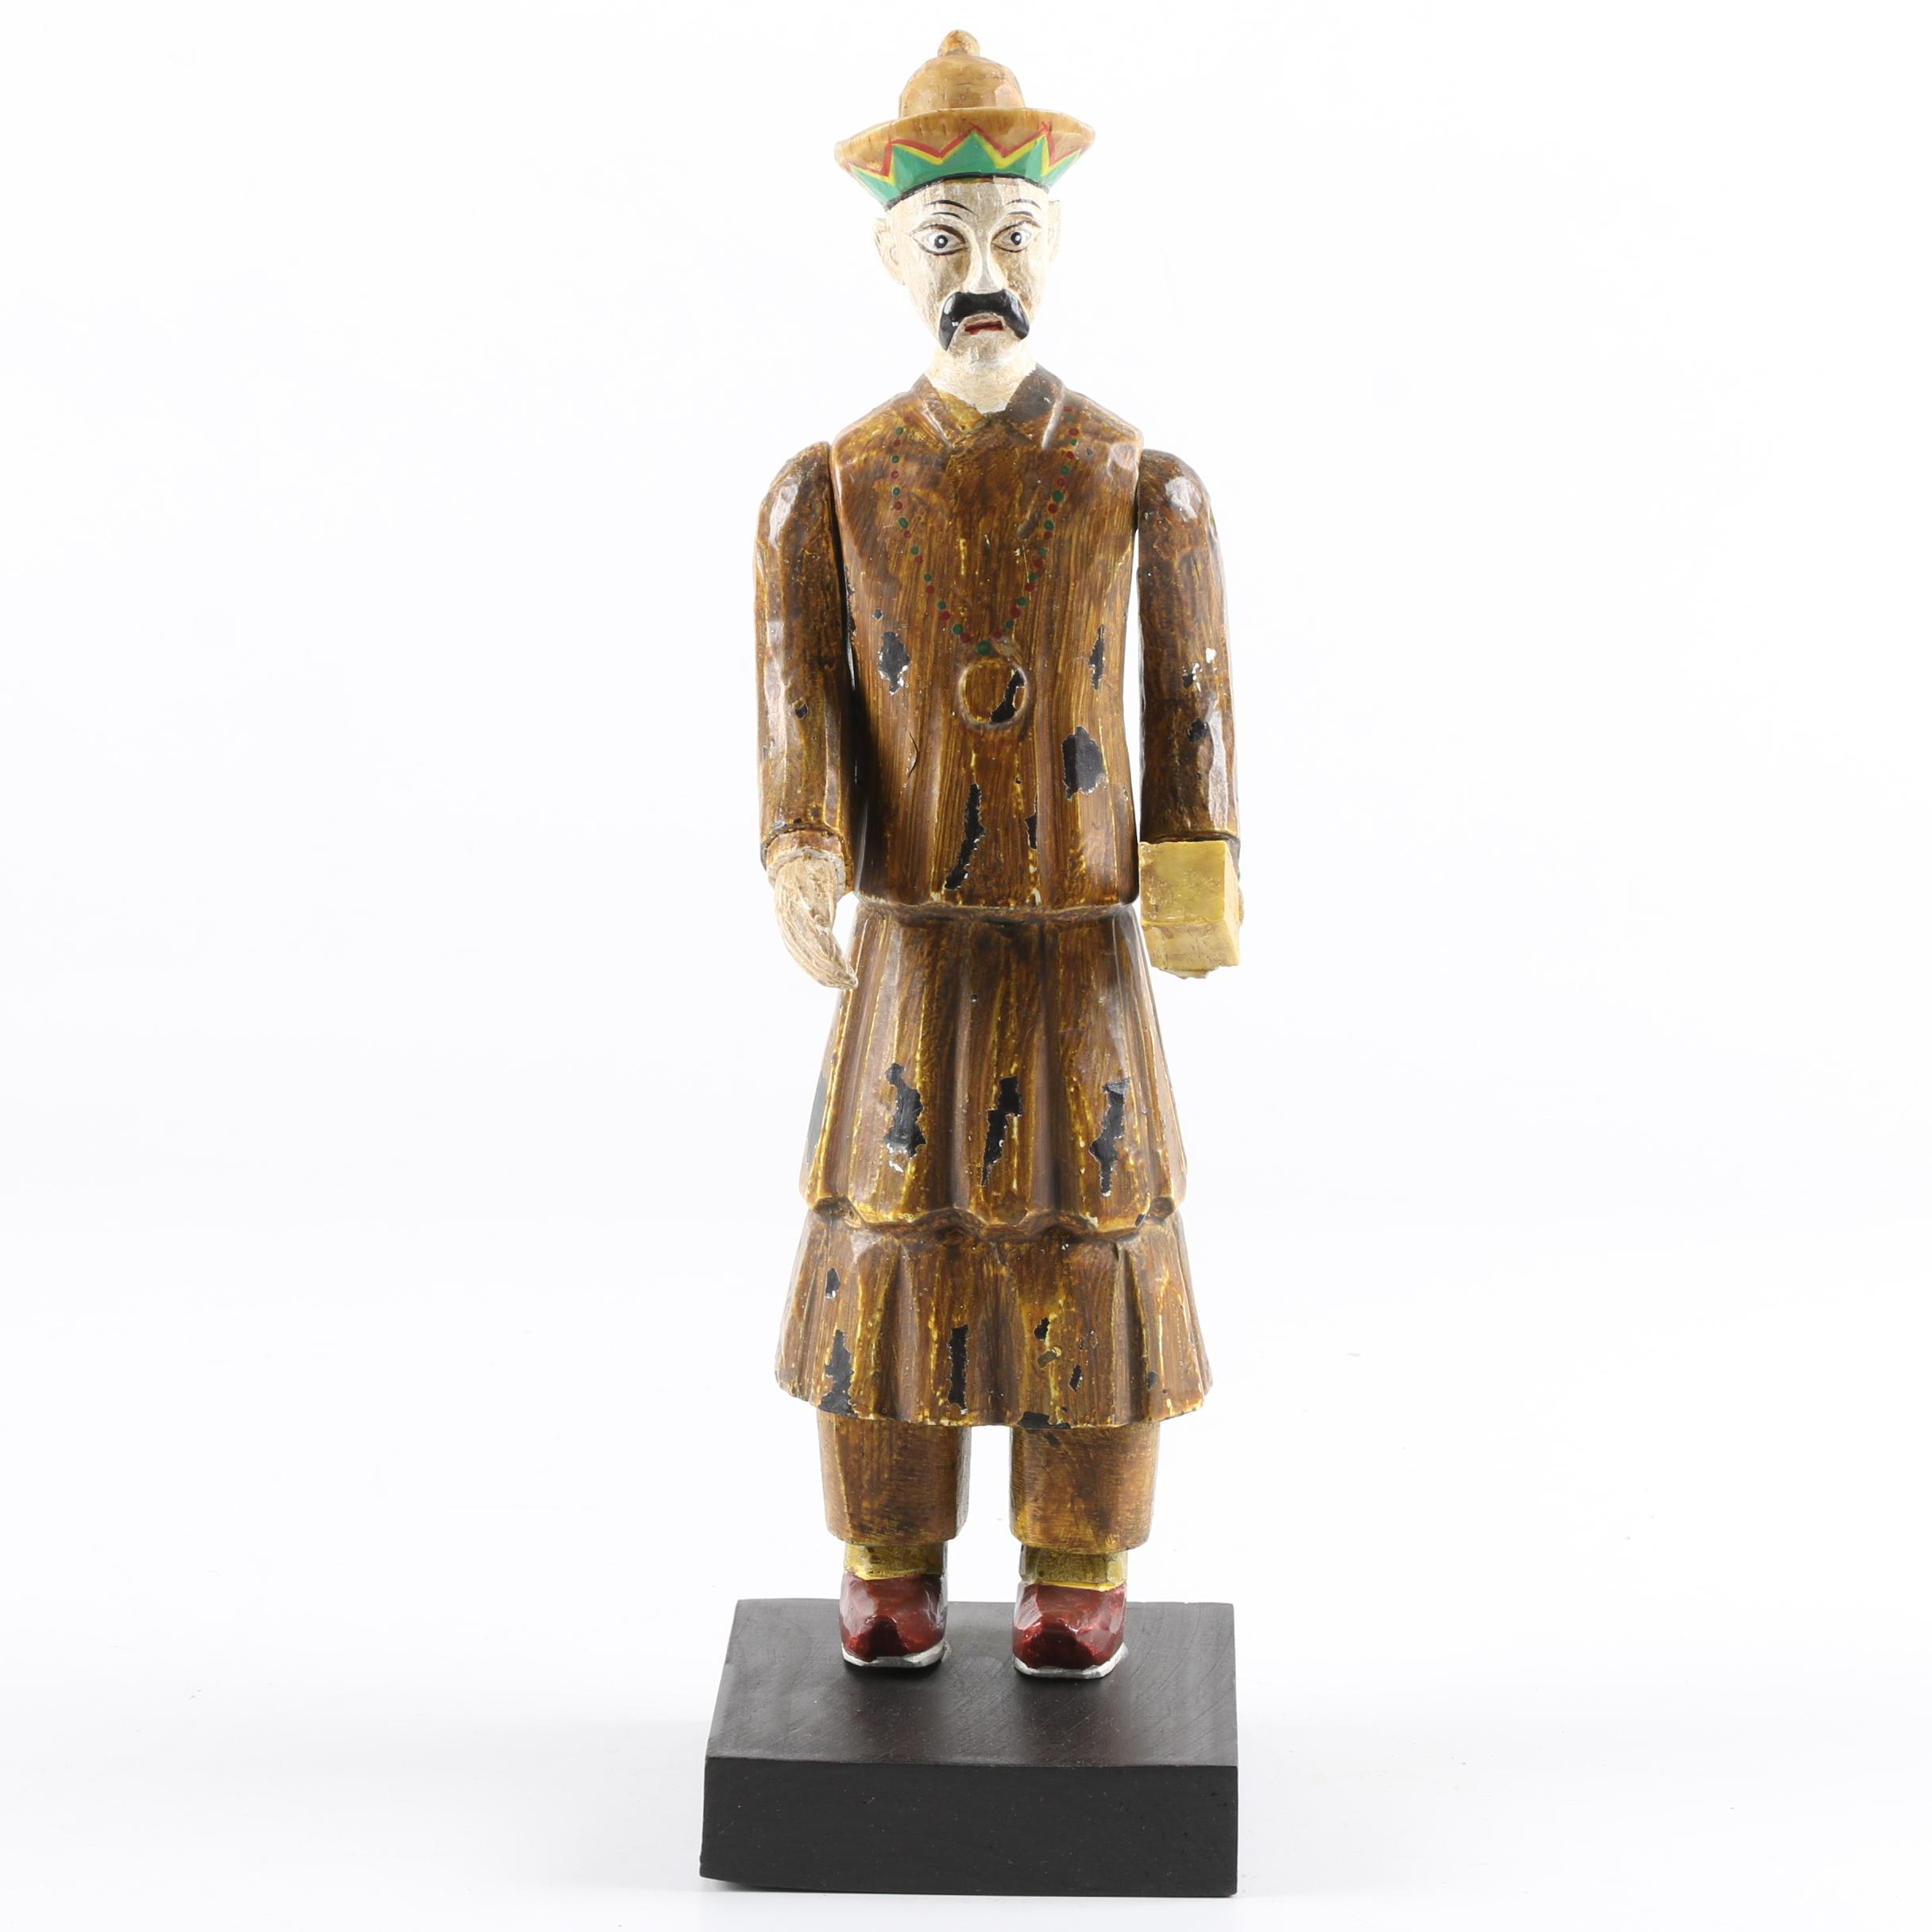 Hand-Painted Asian Inspired Resin Male Figurine